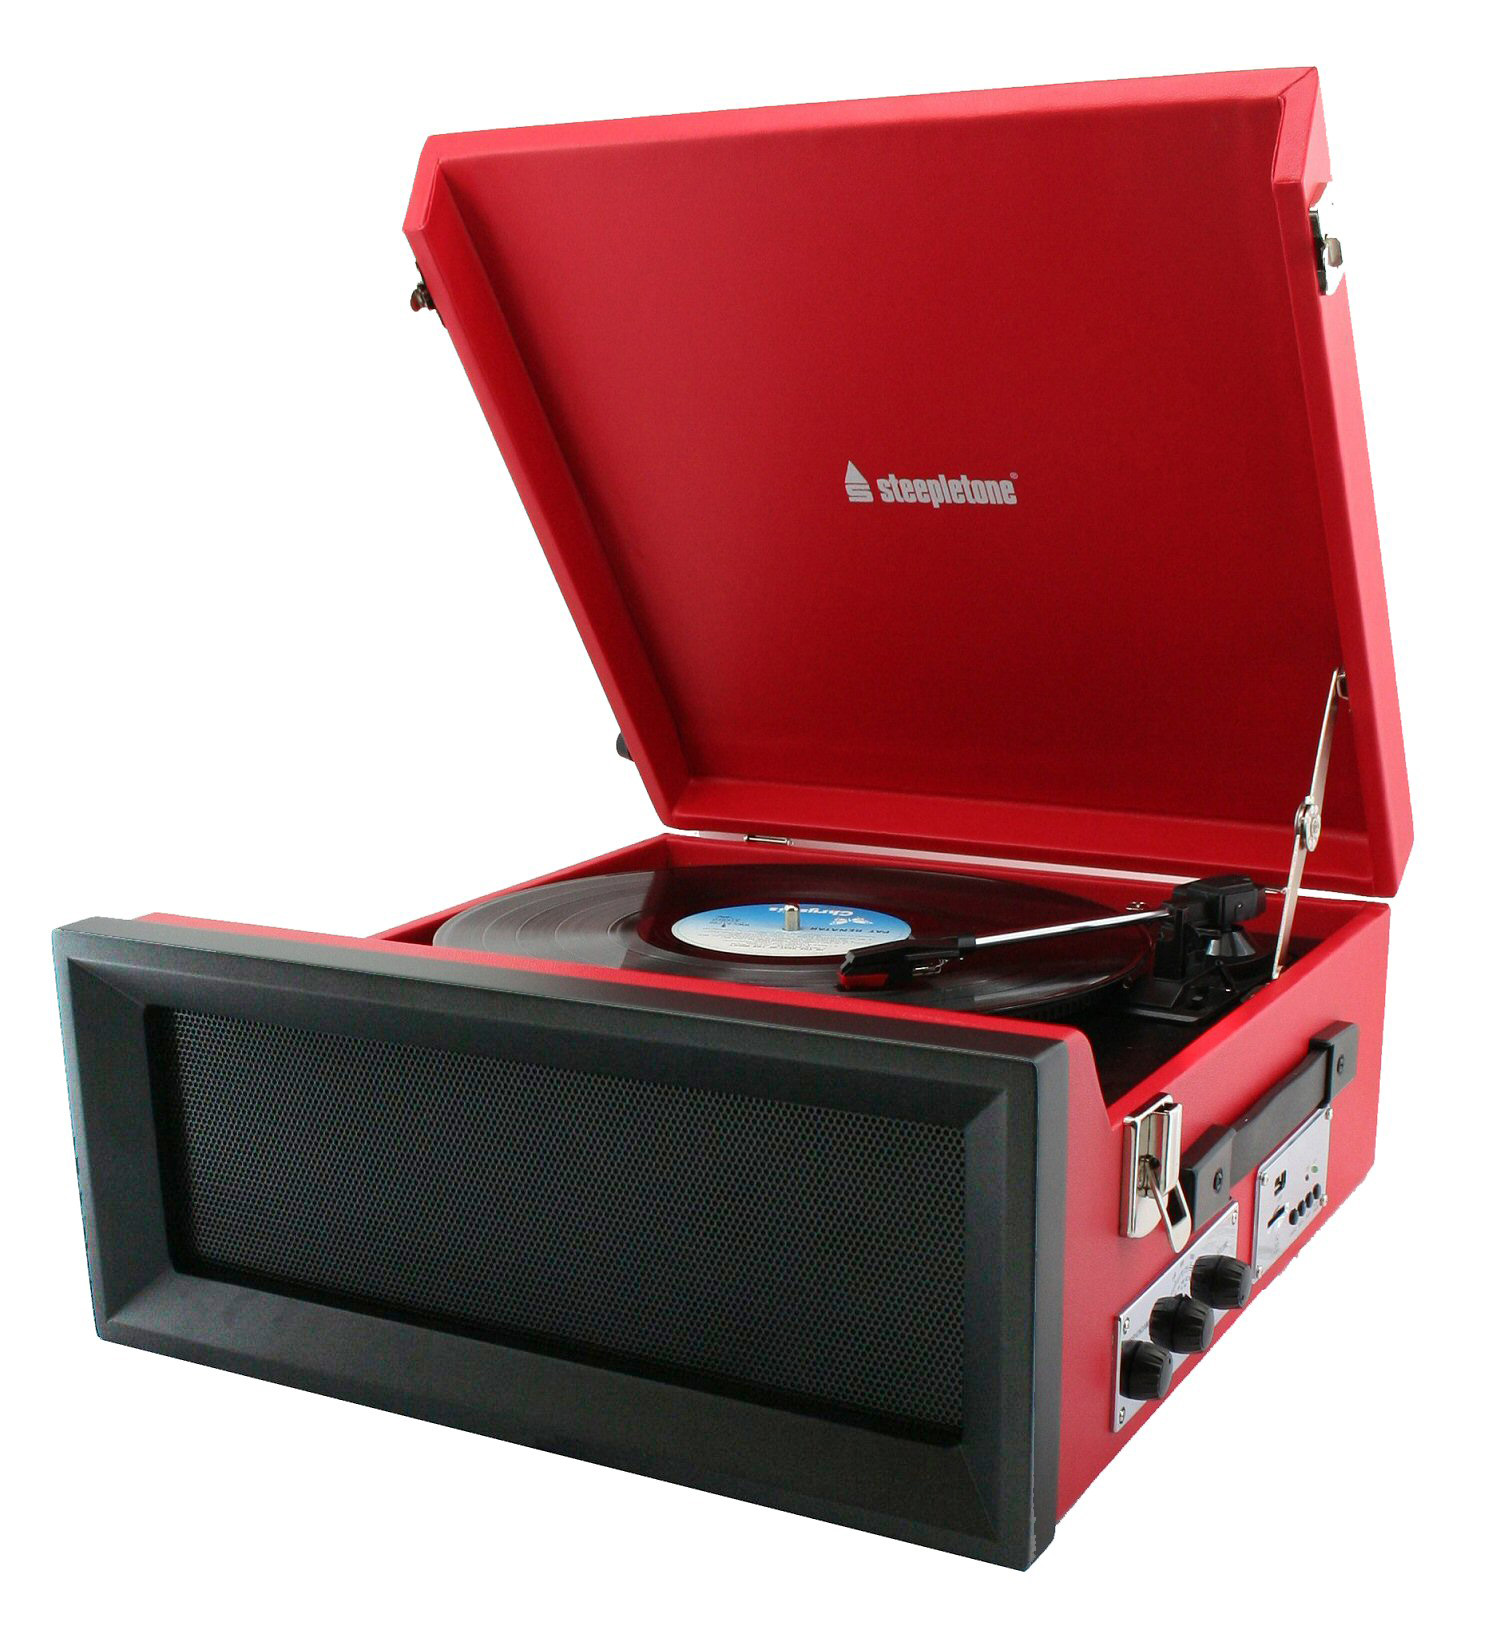 Steepletone 1960s Style Record Player Red